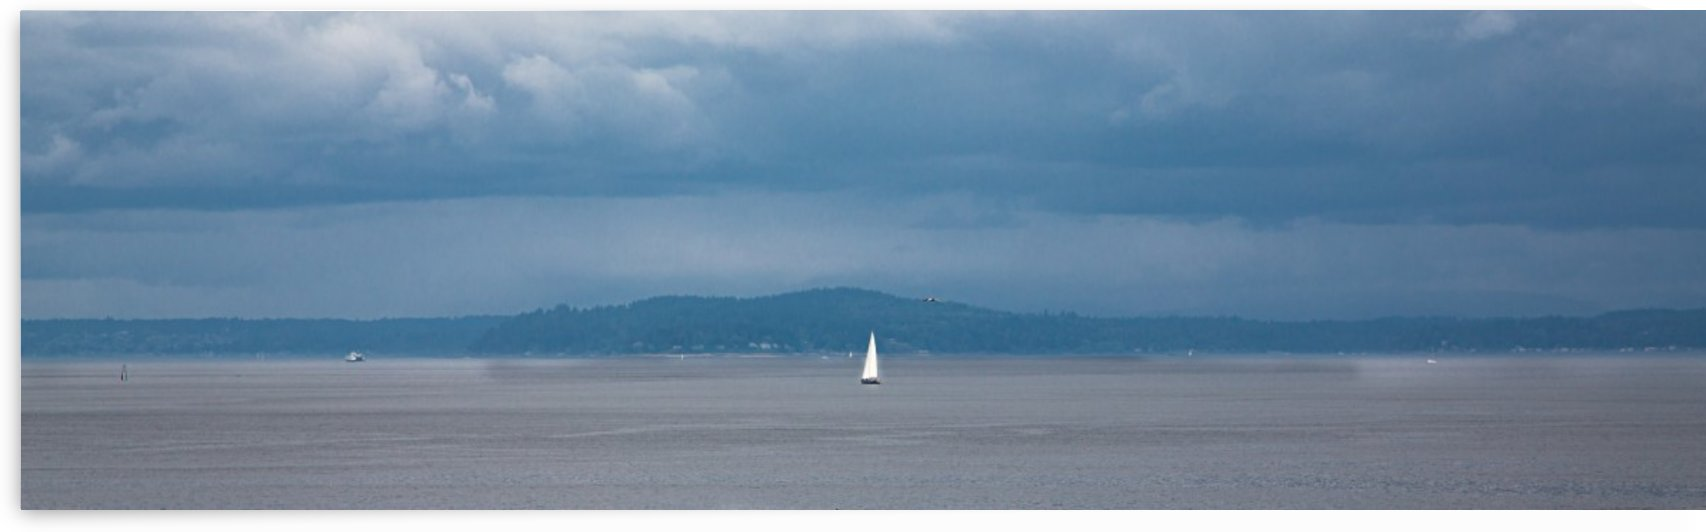 White Sail on a Grey Day_1593733841.8119 by Darryl Brooks